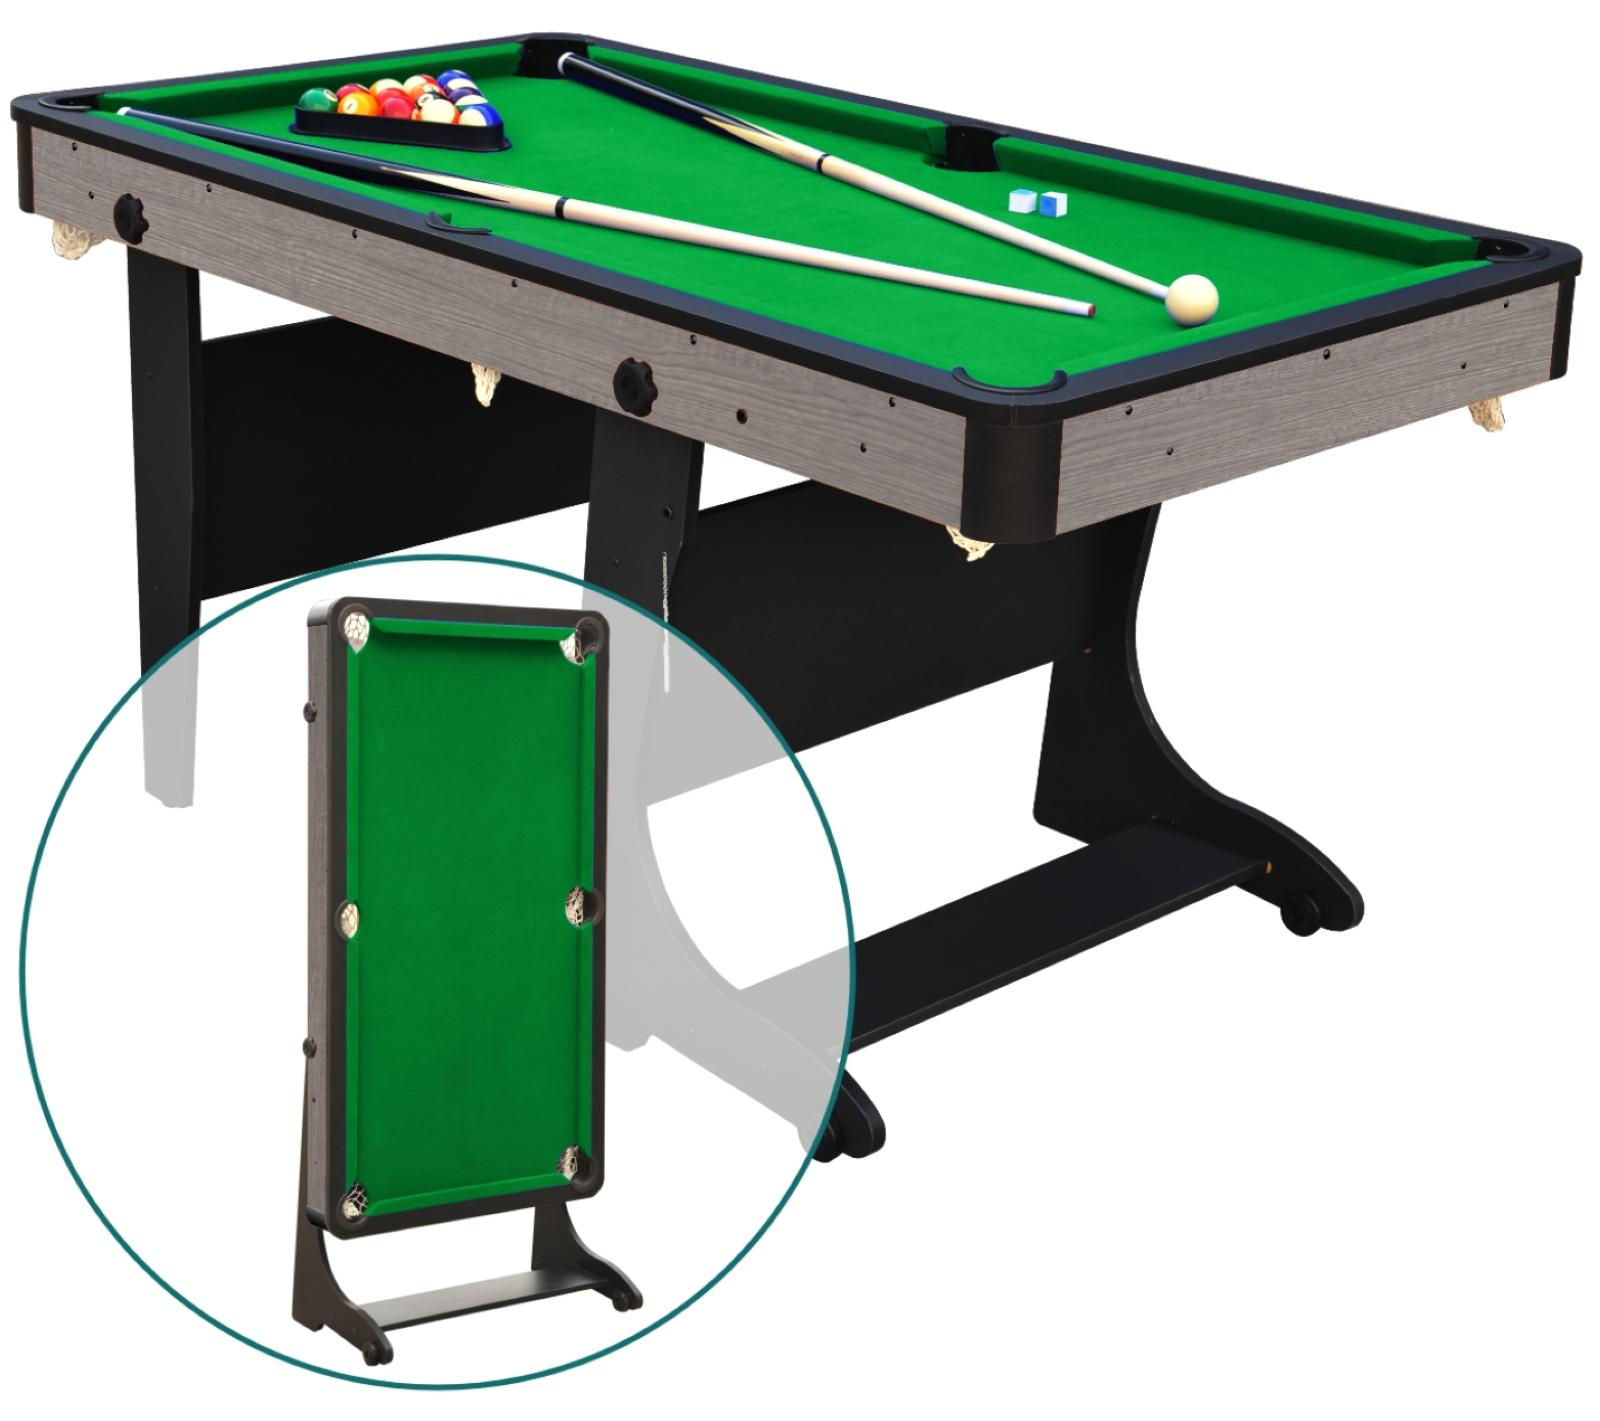 5' Folding Billiard Pool Table Cues Balls Home Game Room Pla